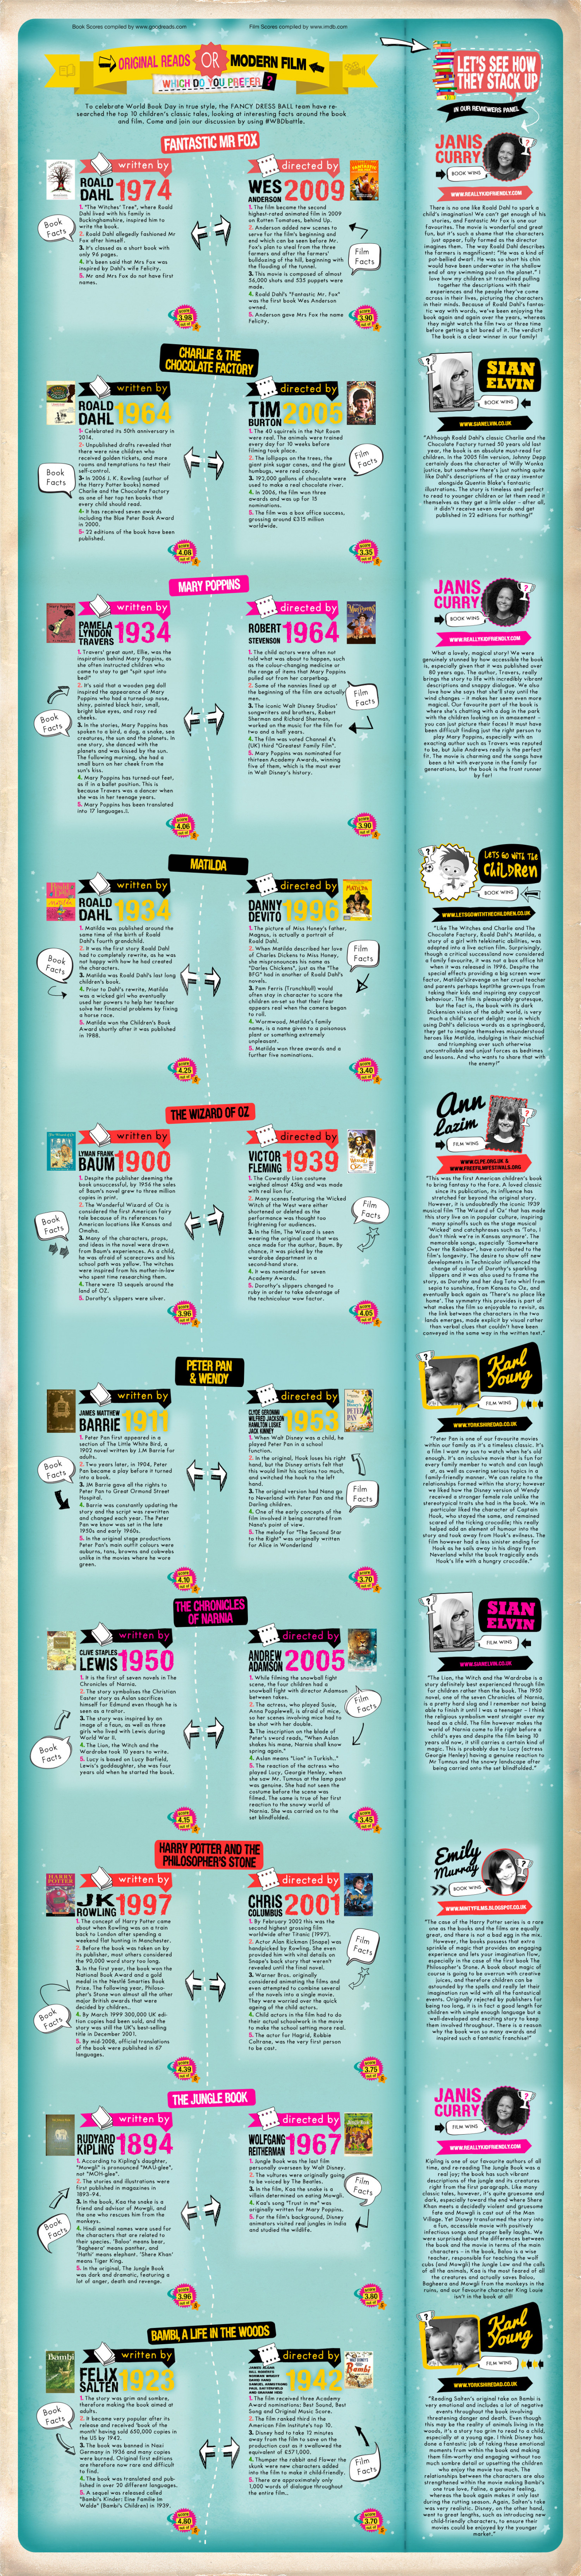 World Book Day: Book or film, which do you prefer? Infographic